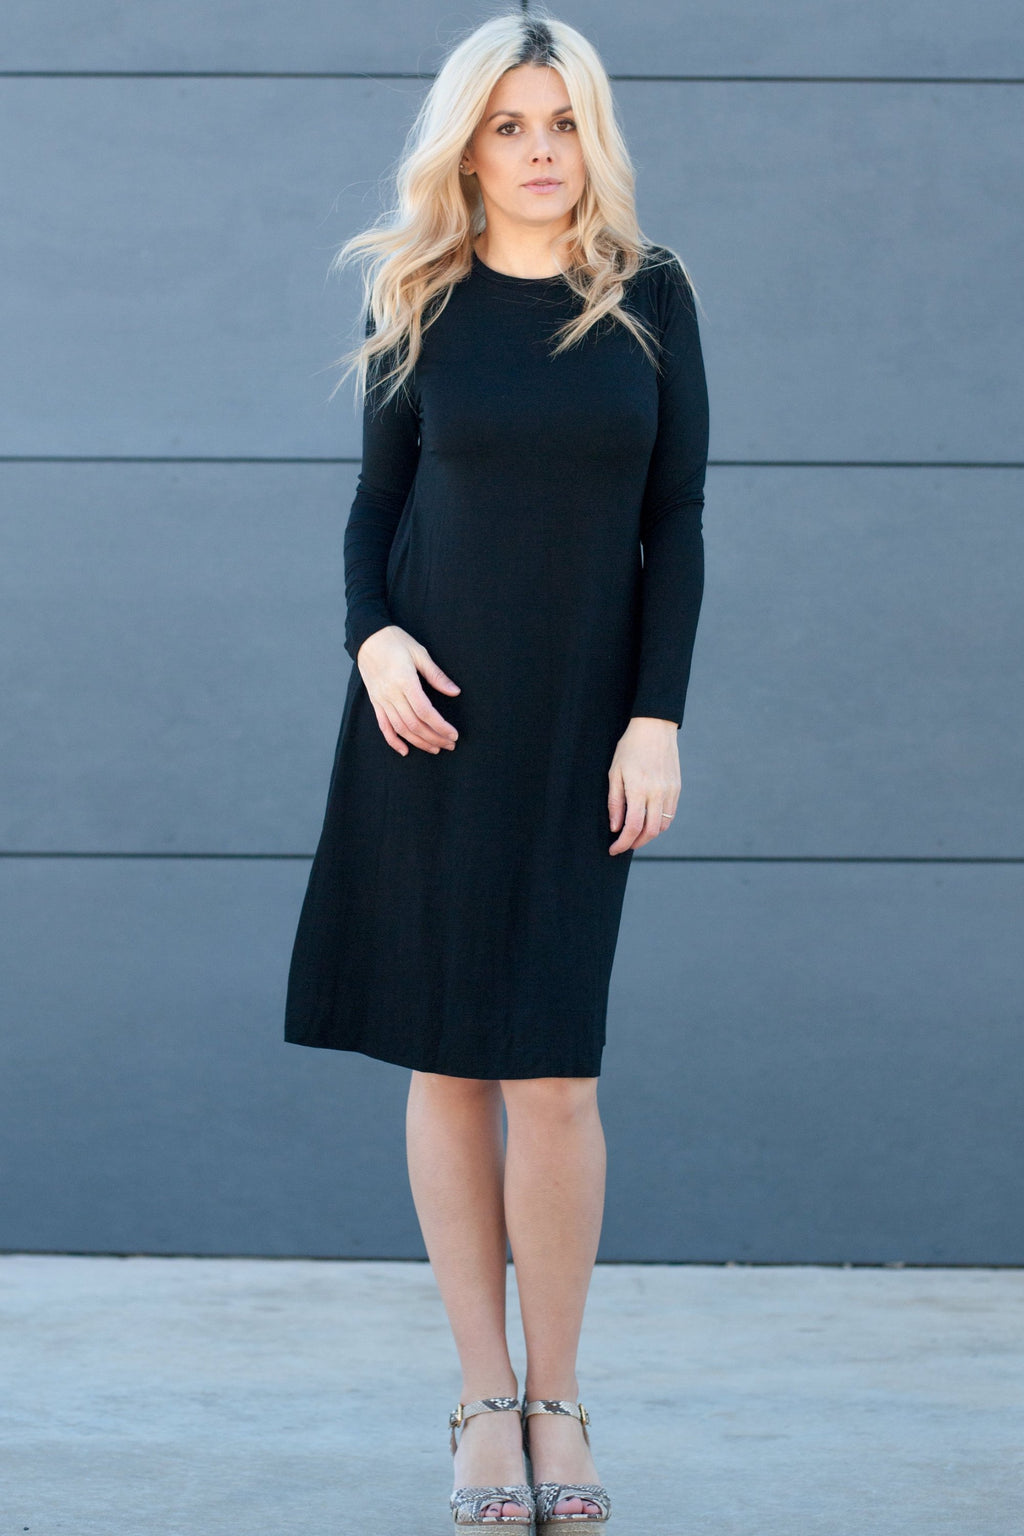 Sundrop Dress in Black - Nursing Friendly Midi with Side Zippers 43""